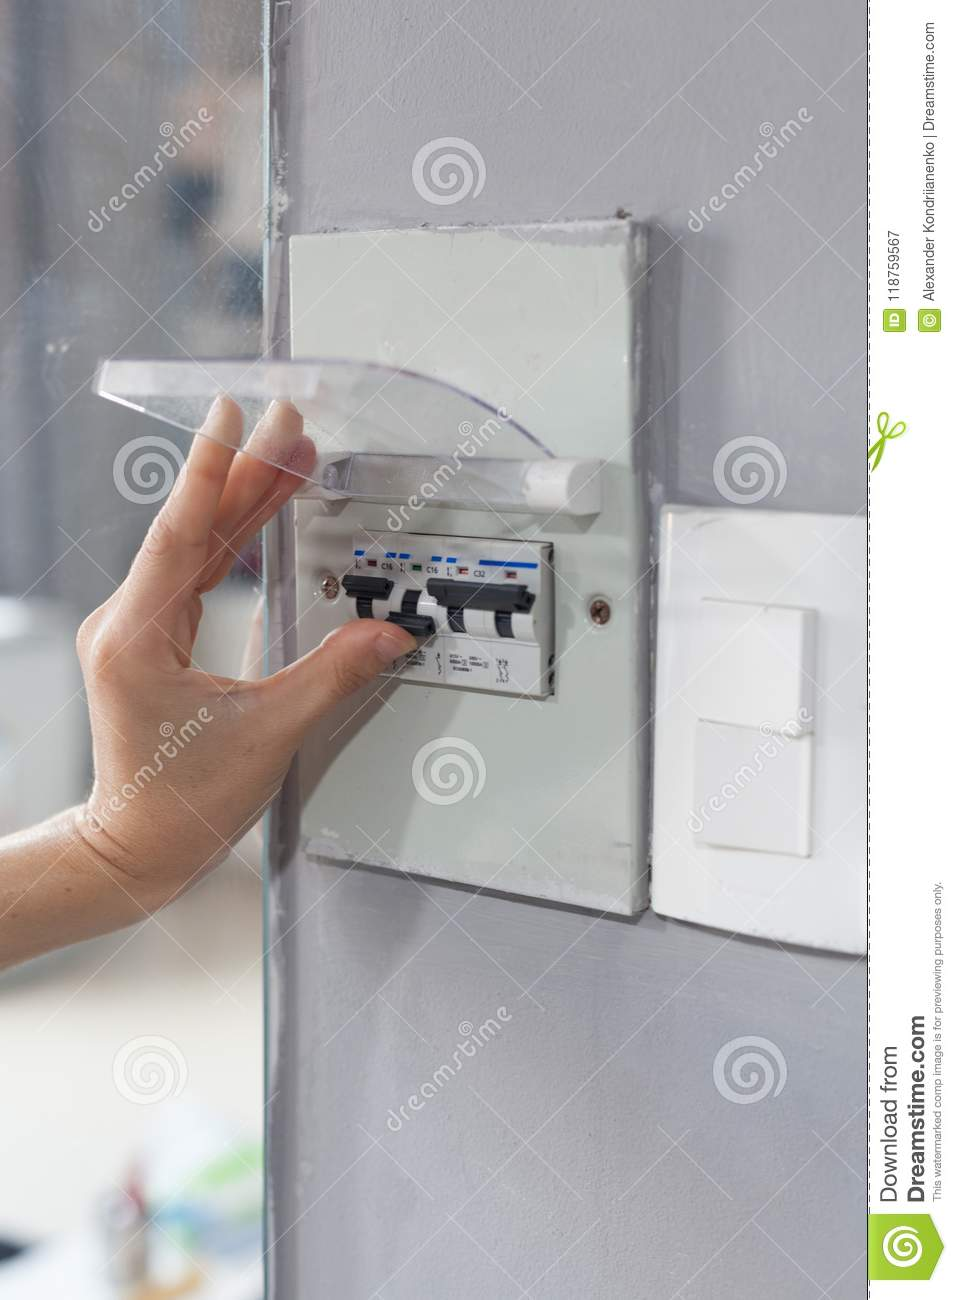 House Fuse Box Trusted Wiring Diagram Woman Hand Turning Off In The Stock Image Of